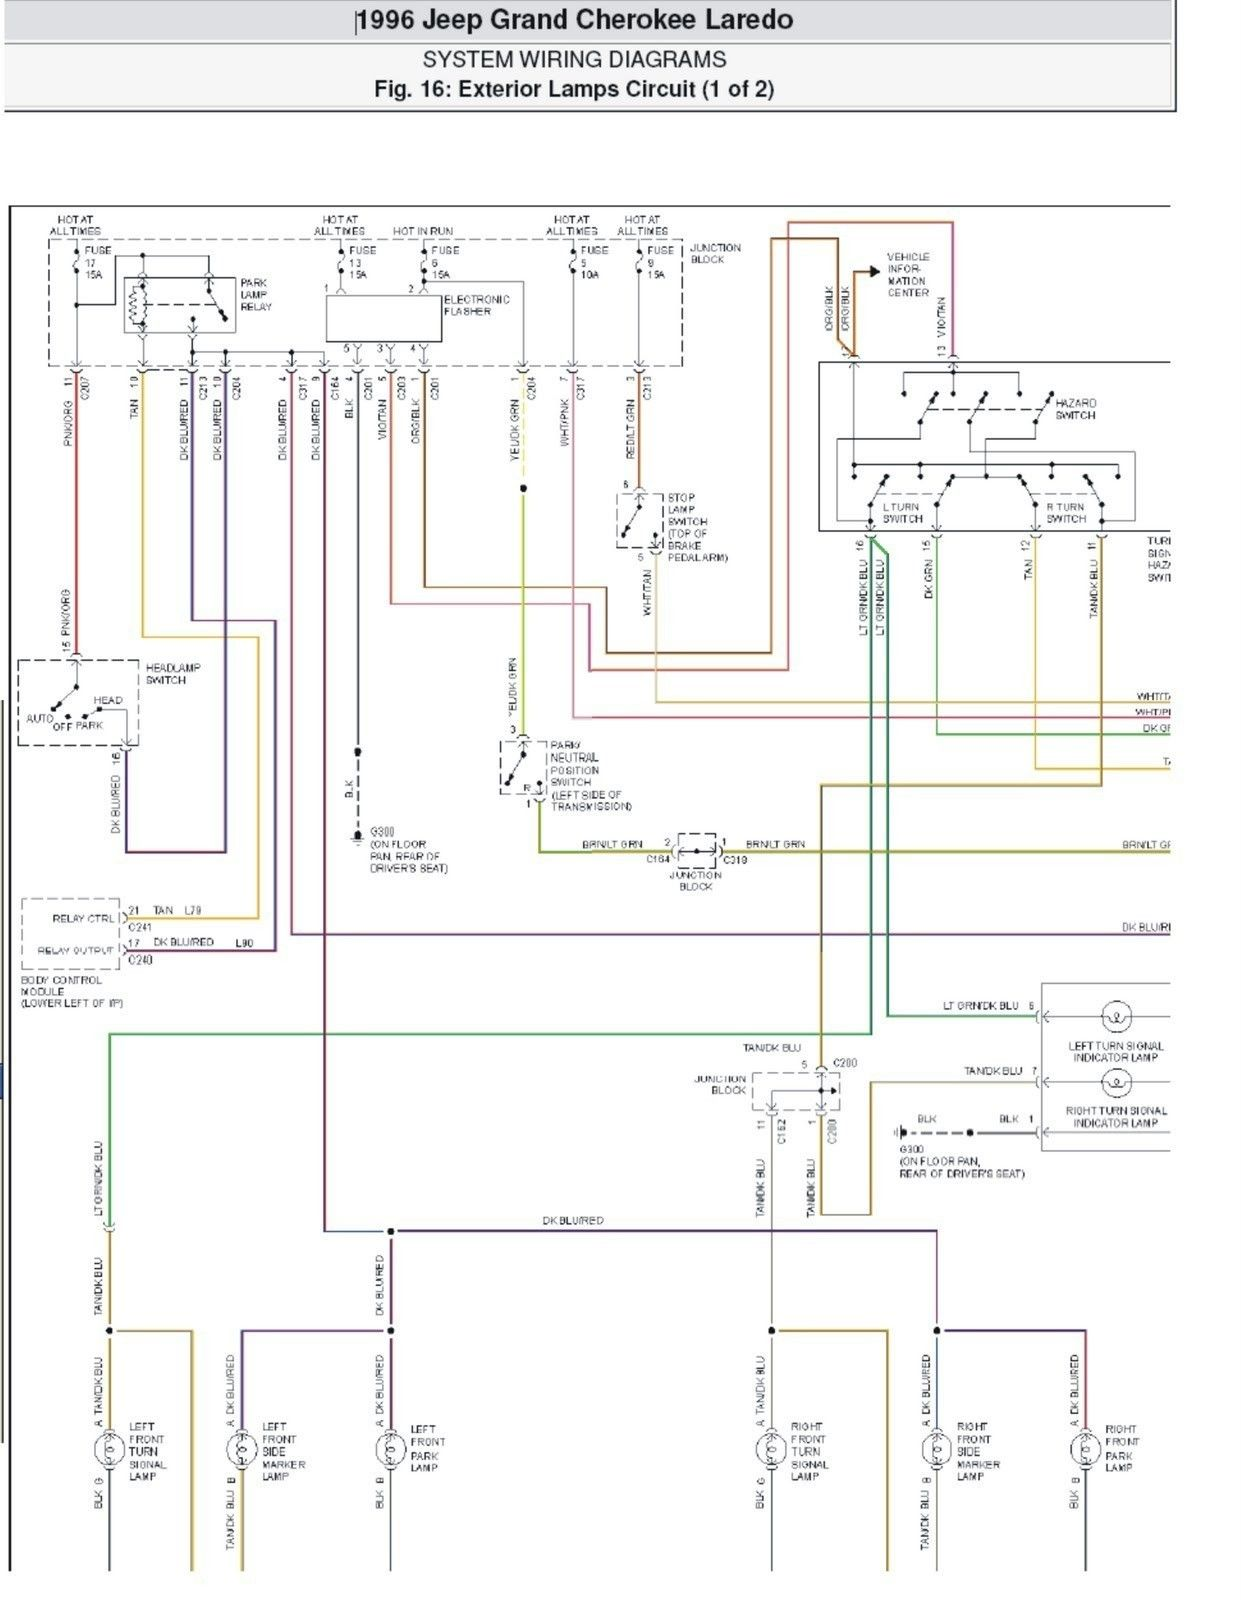 Best Of Jeep Xj Wiring Diagram in 2020 | Jeep grand ...